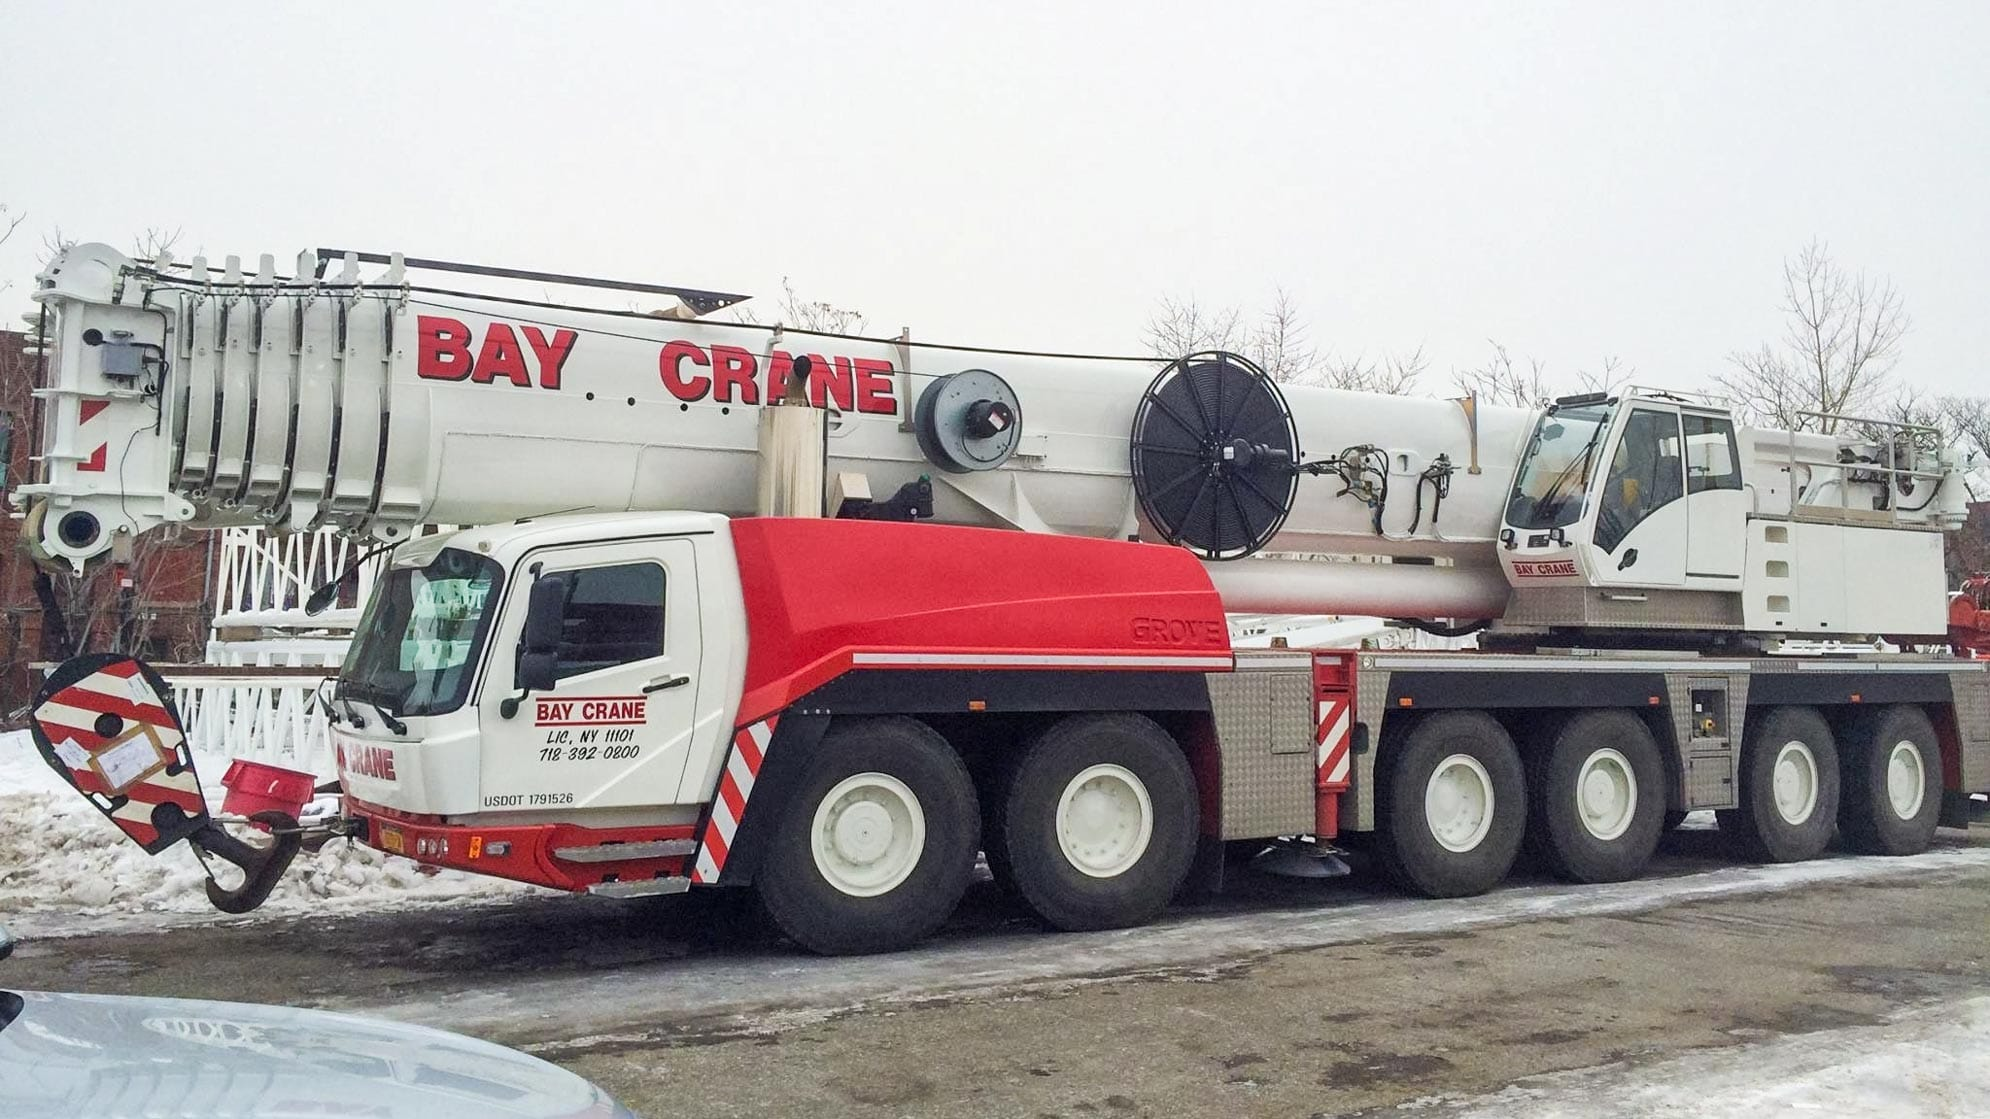 GMK 6350 all terrain crane with a hydraulic expandable